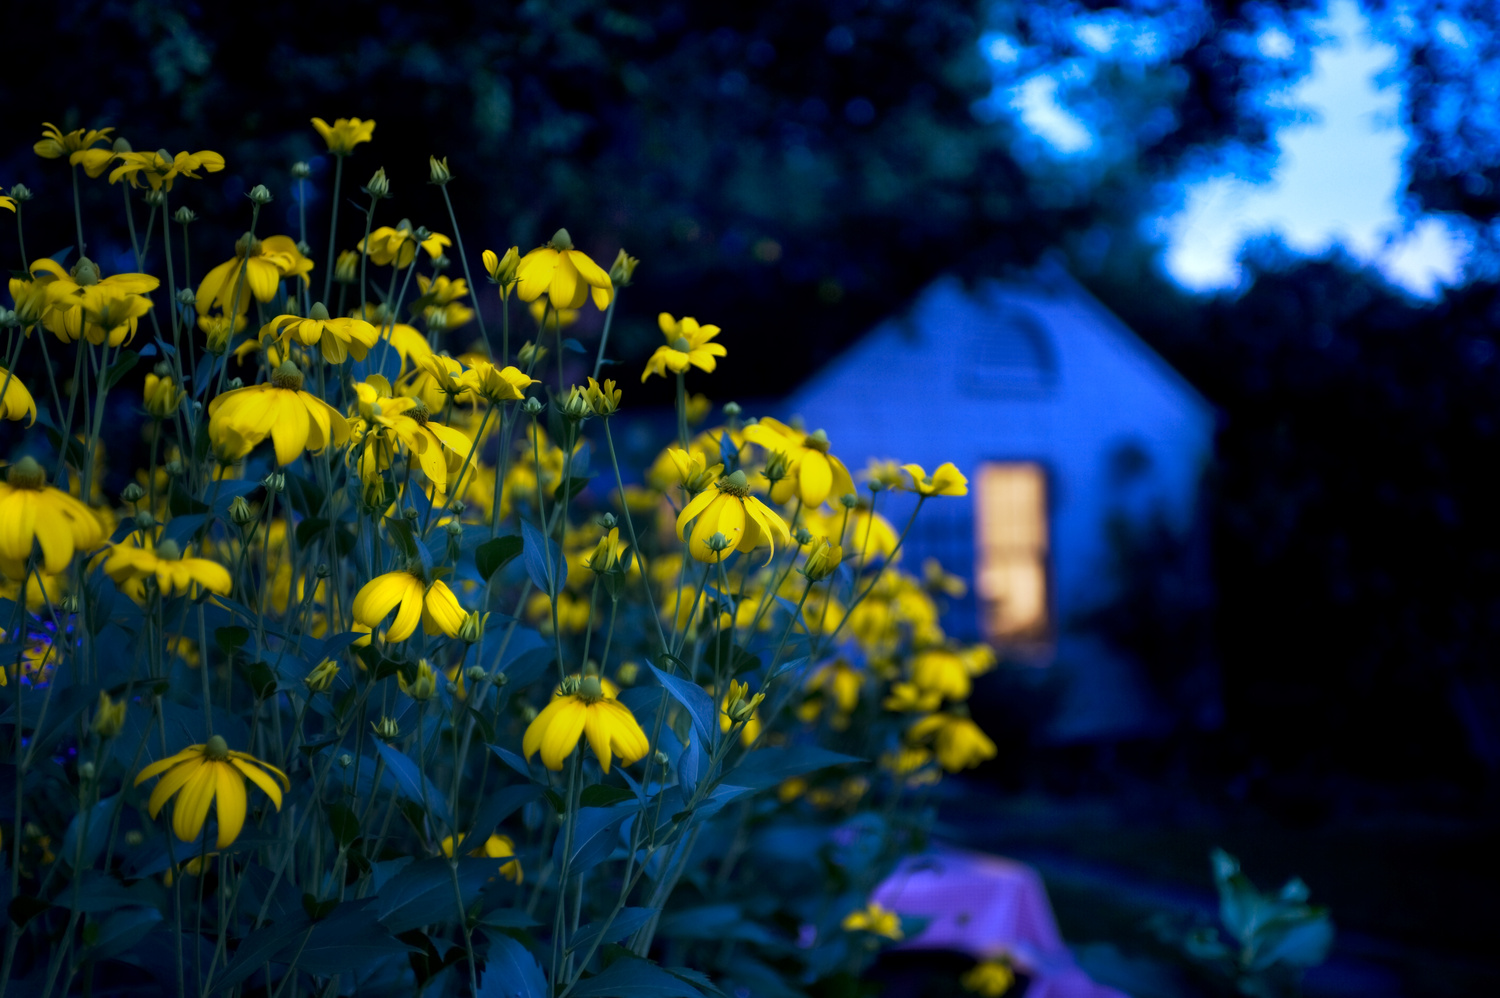 Coneflower with lighted window by kent j